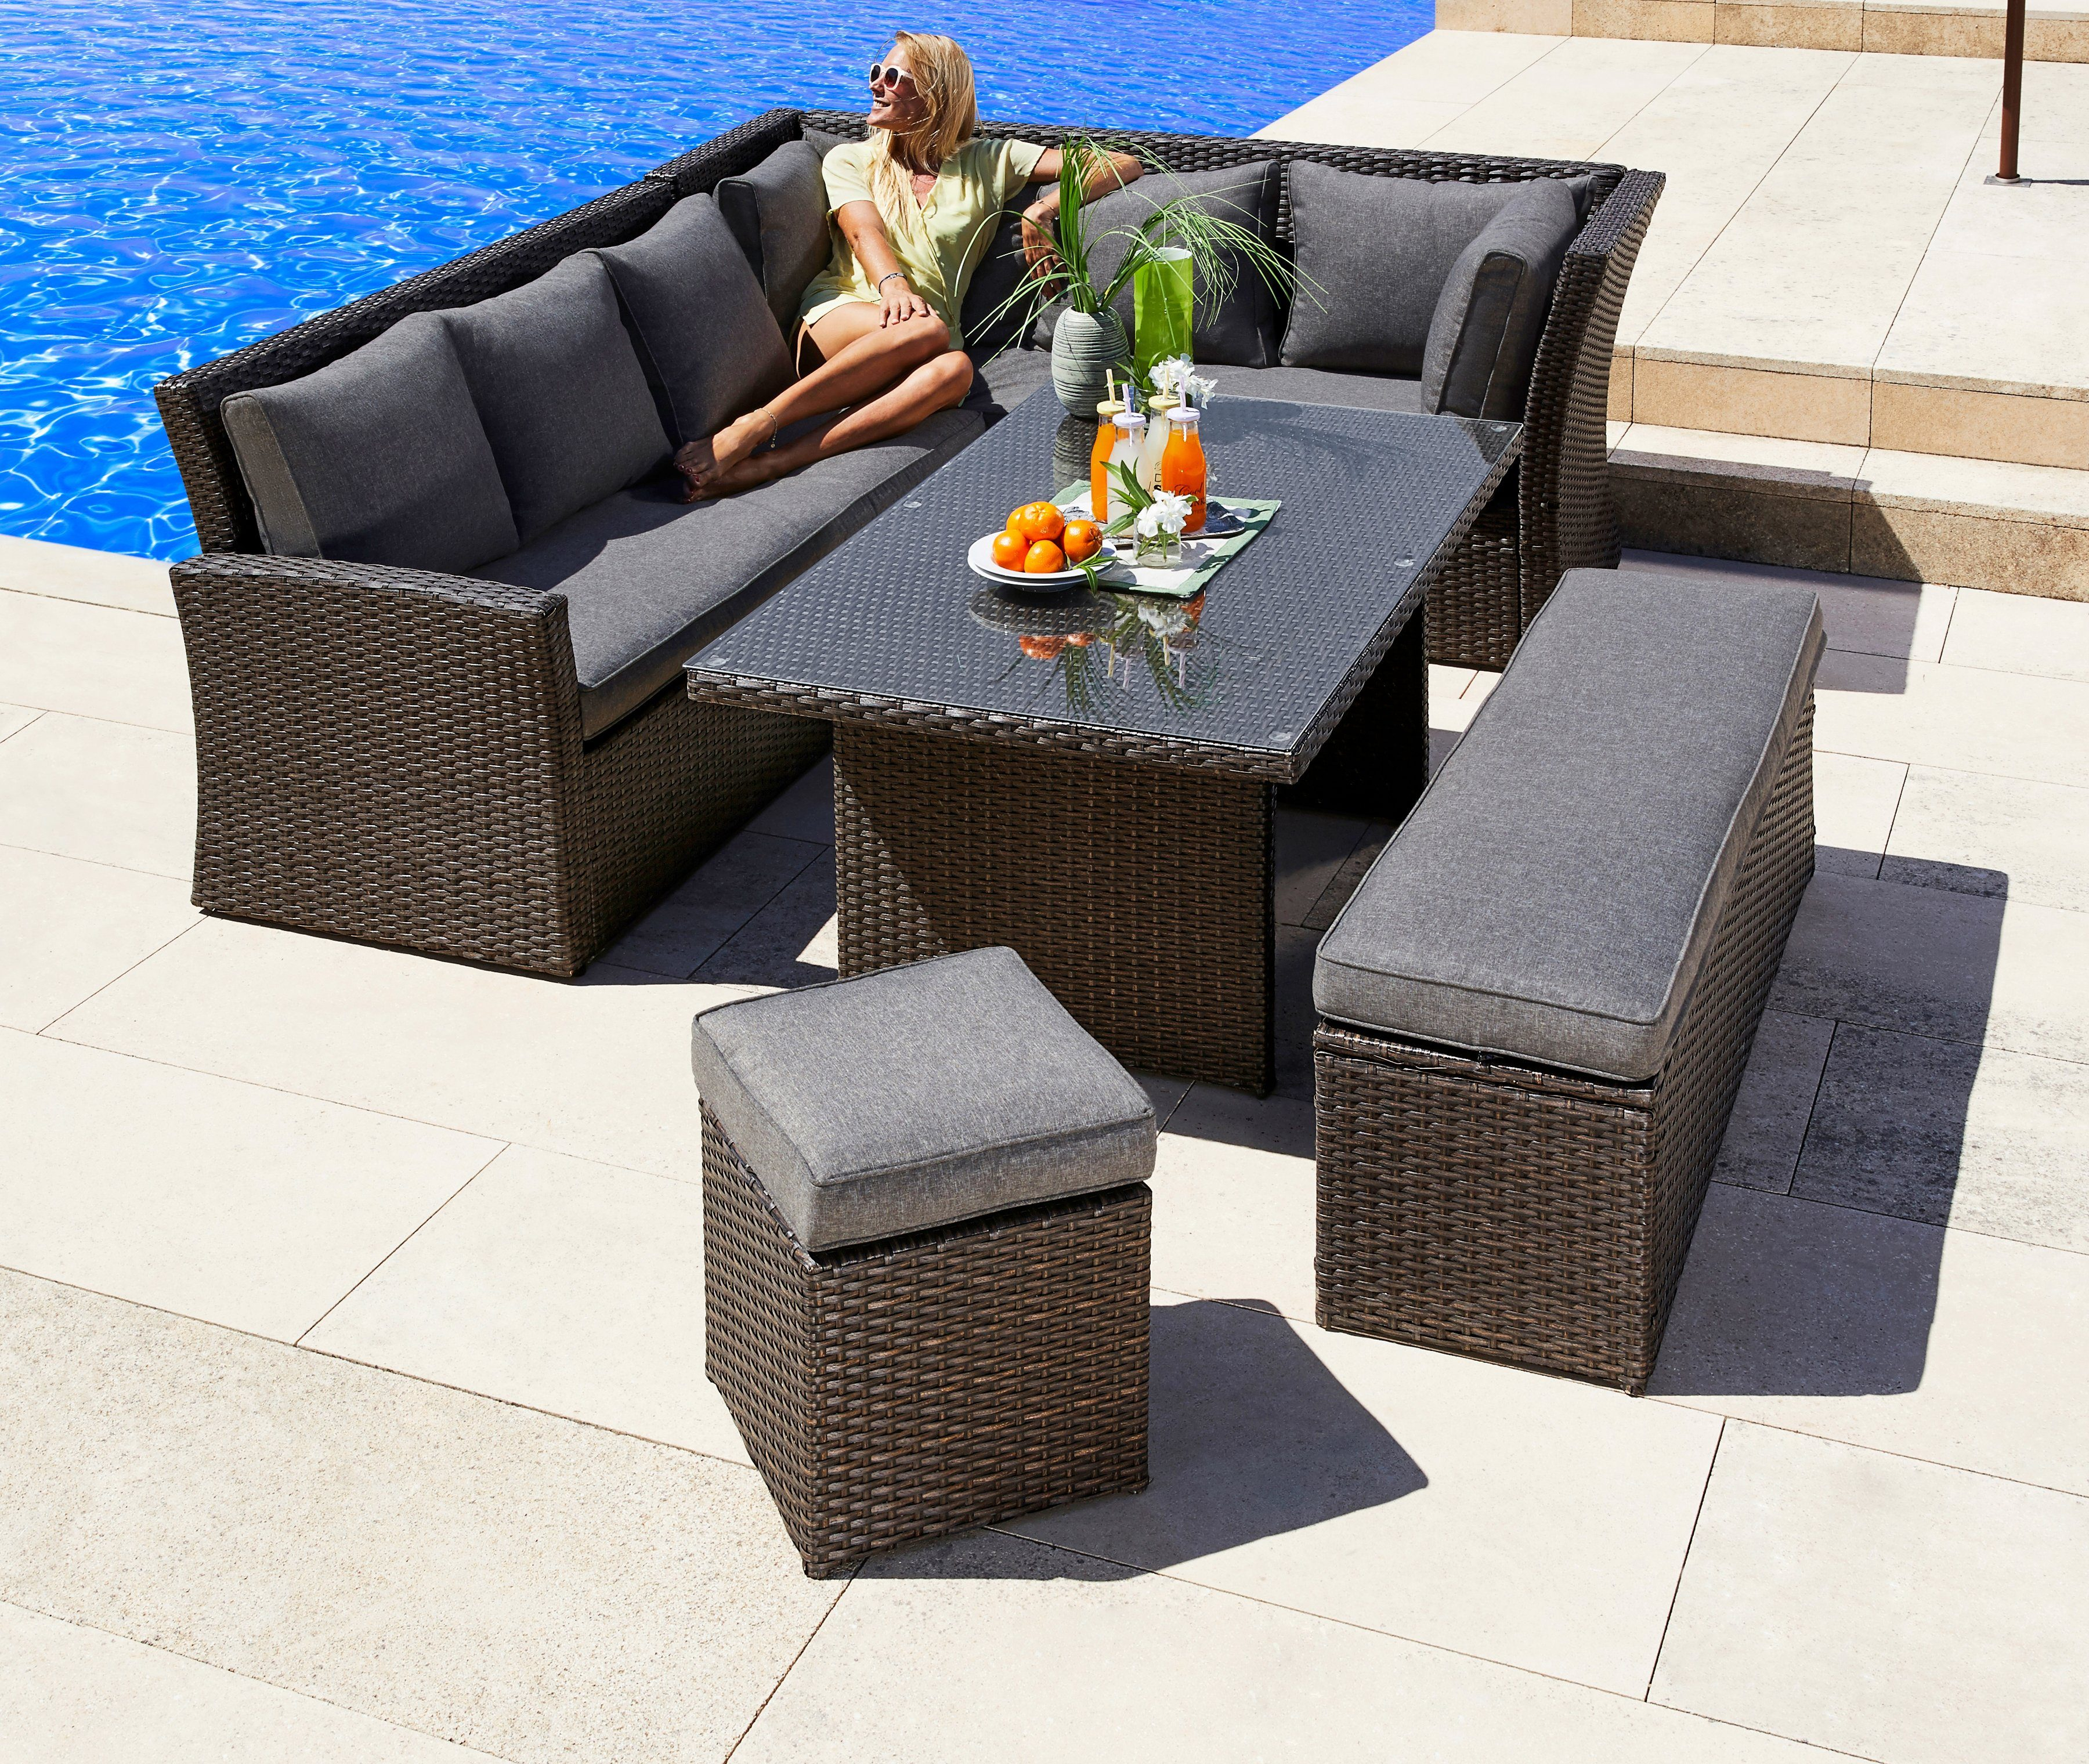 Sessel Hocker Set Gartenmöbelset »mallorca«, 17-tlg., 2x 3er-sofa, Bank